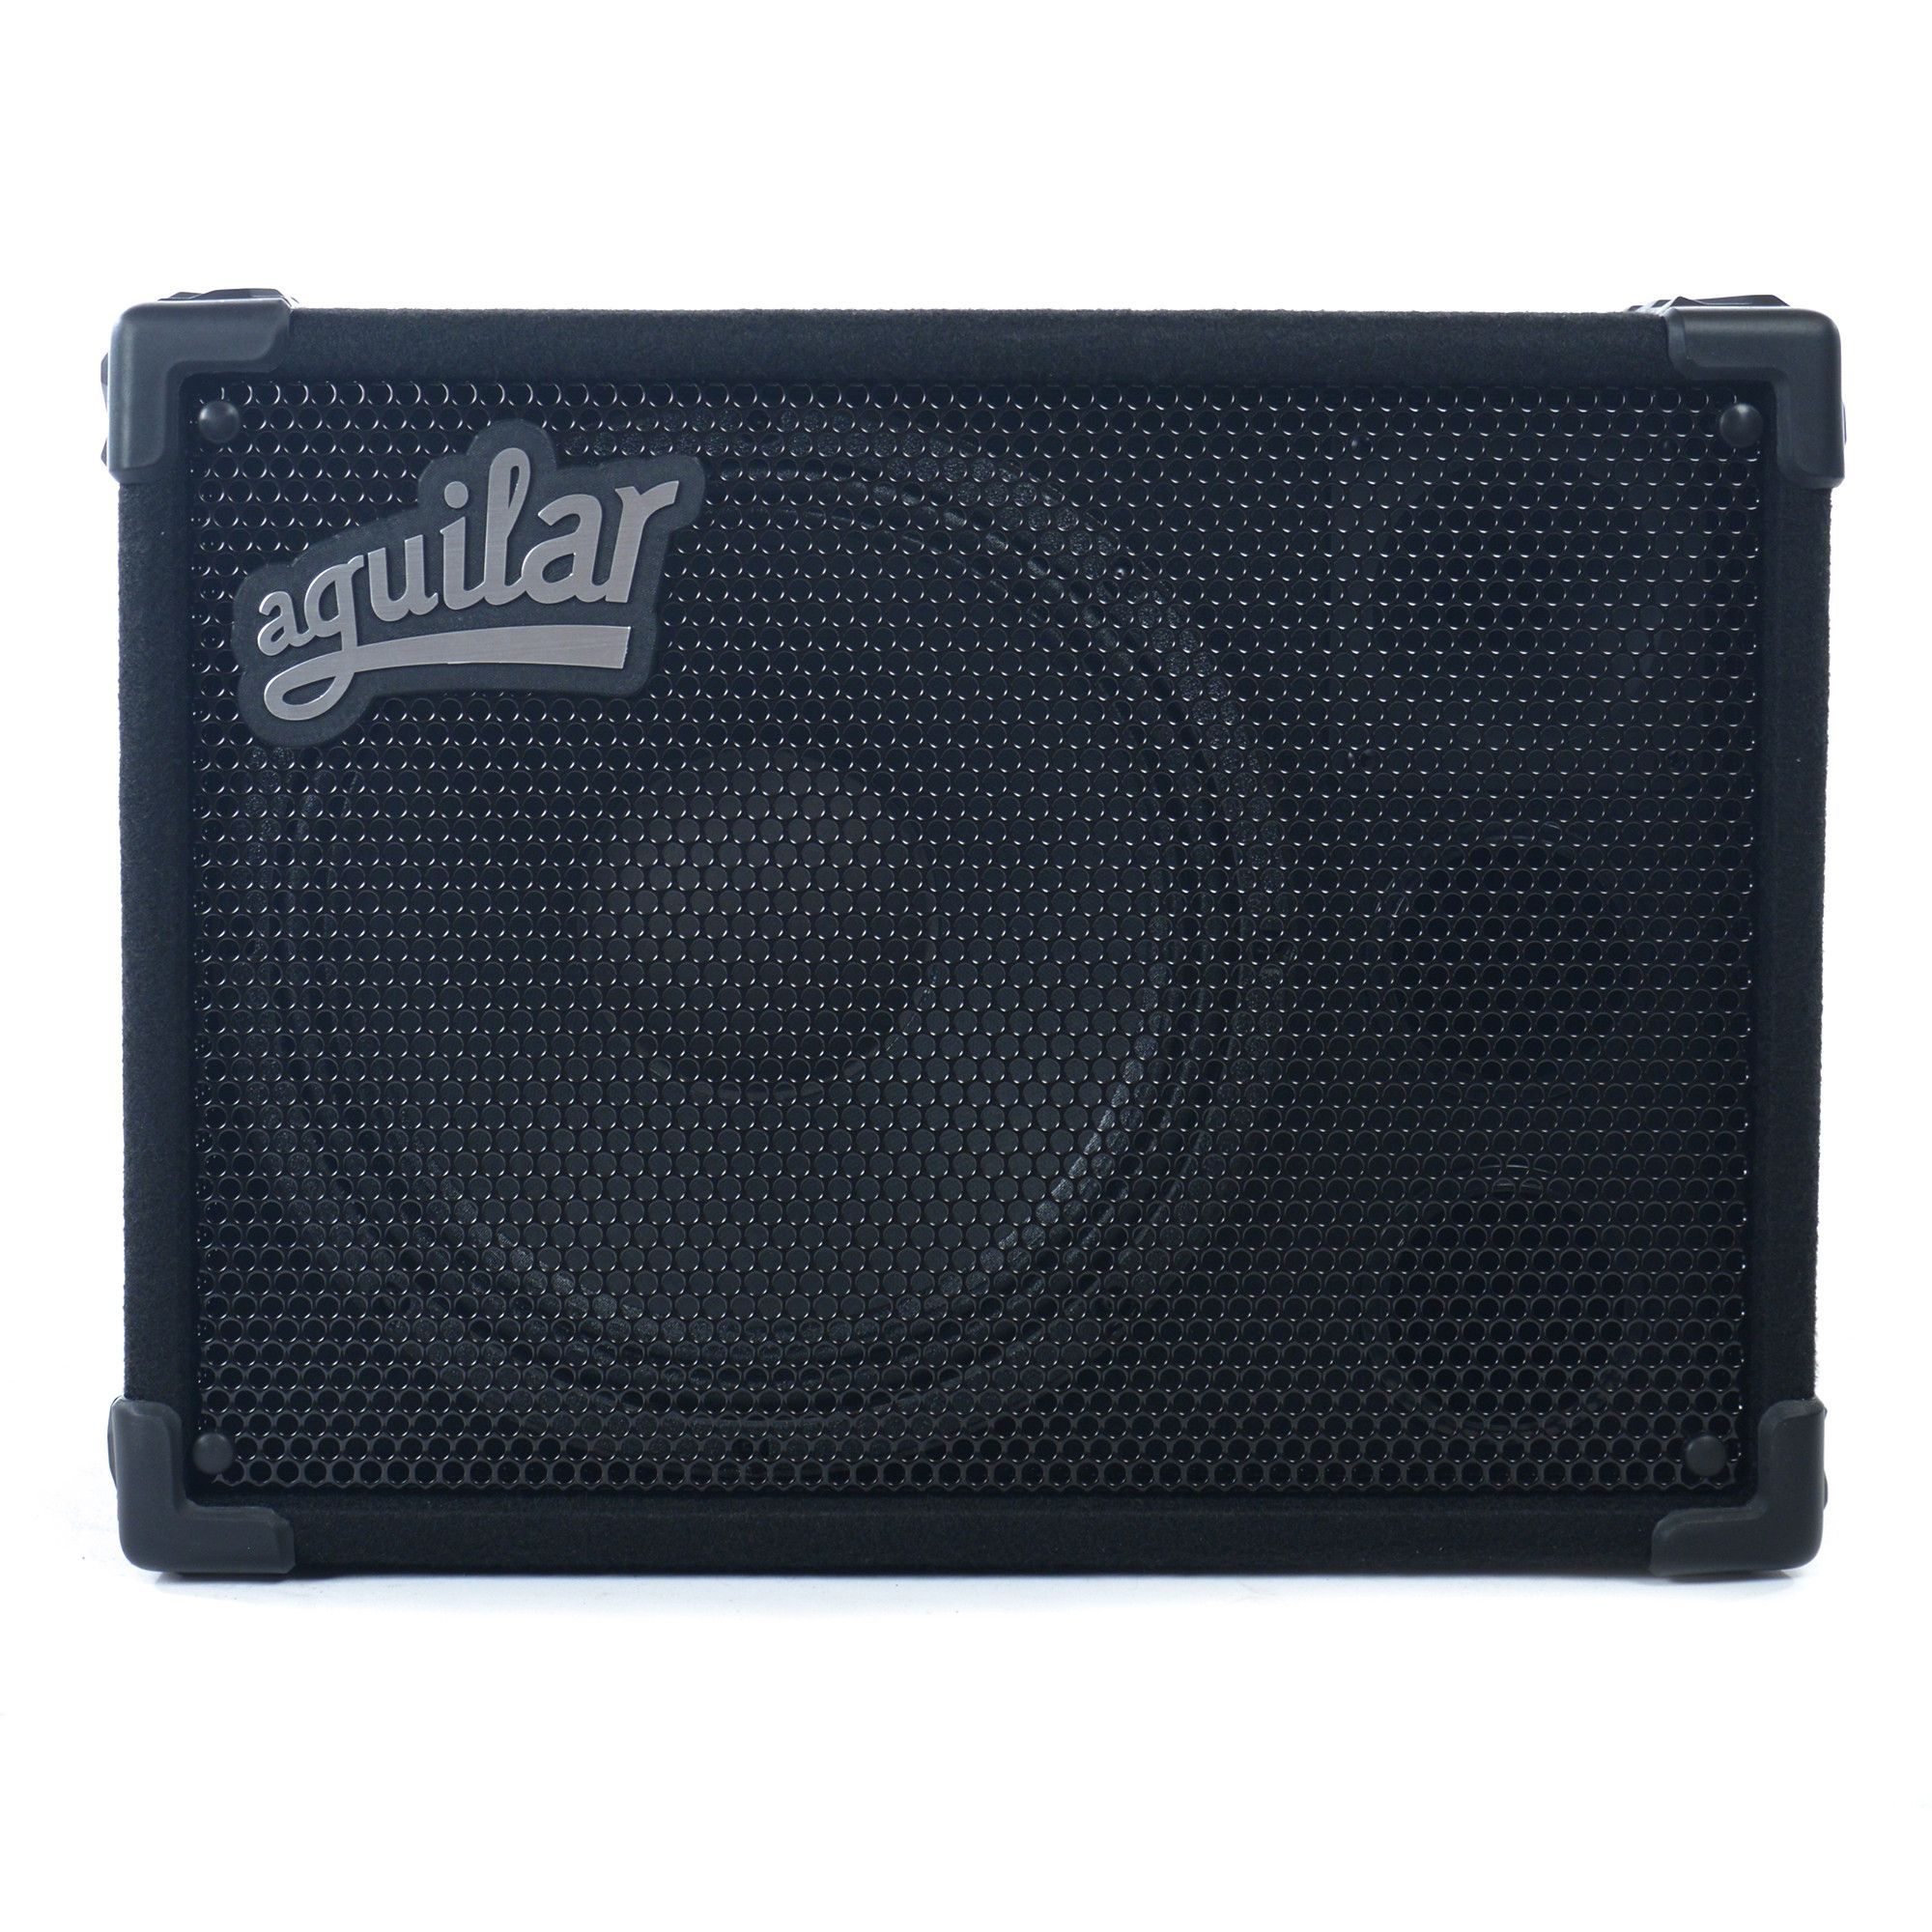 Aguilar GS 1x12 Bass Speaker Cabinet | Bass, Amps & Rock and Roll ...